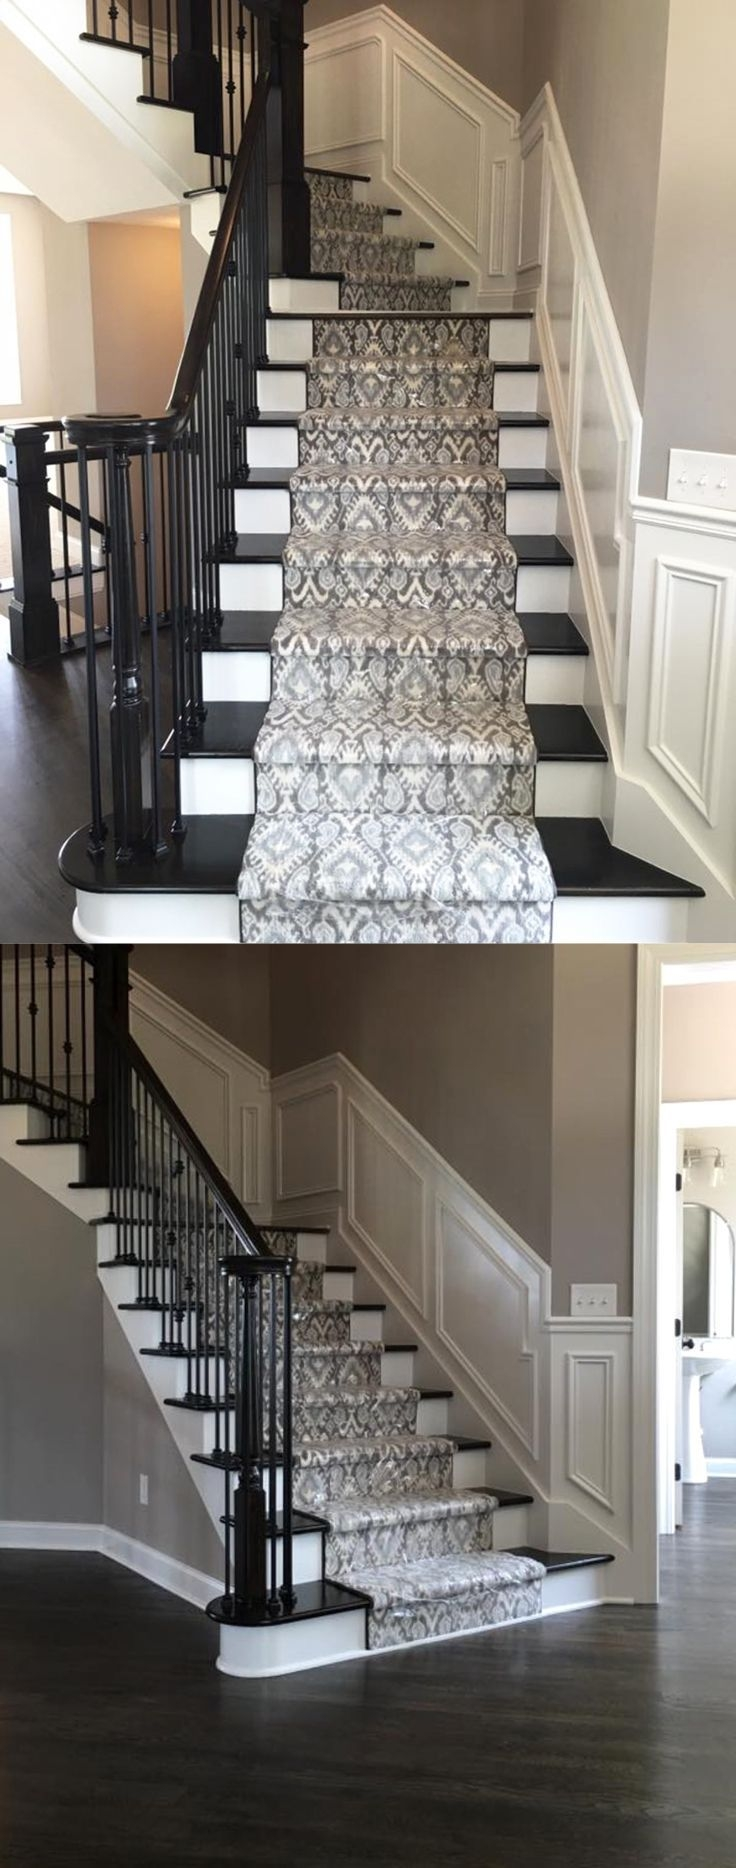 396 Best Images About Stair Runners On Pinterest | Carpet On Hardwood Stairs